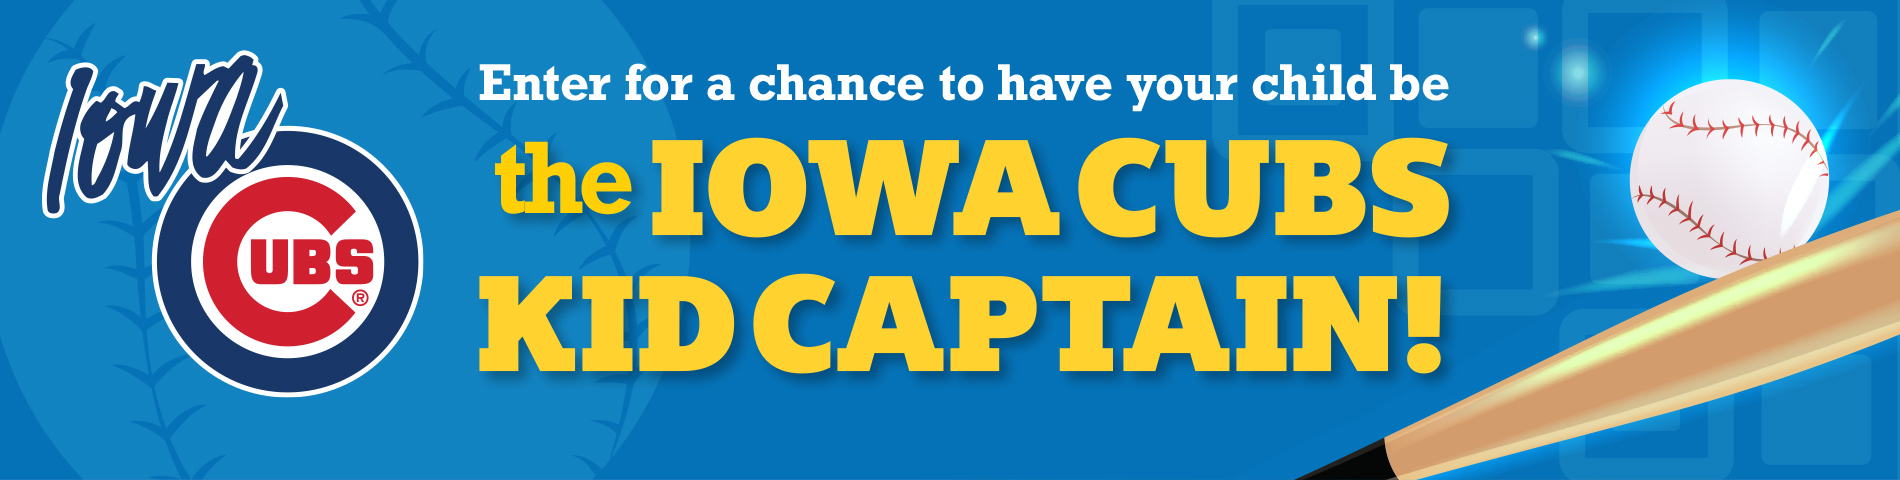 Learn more about Iowa Cubs